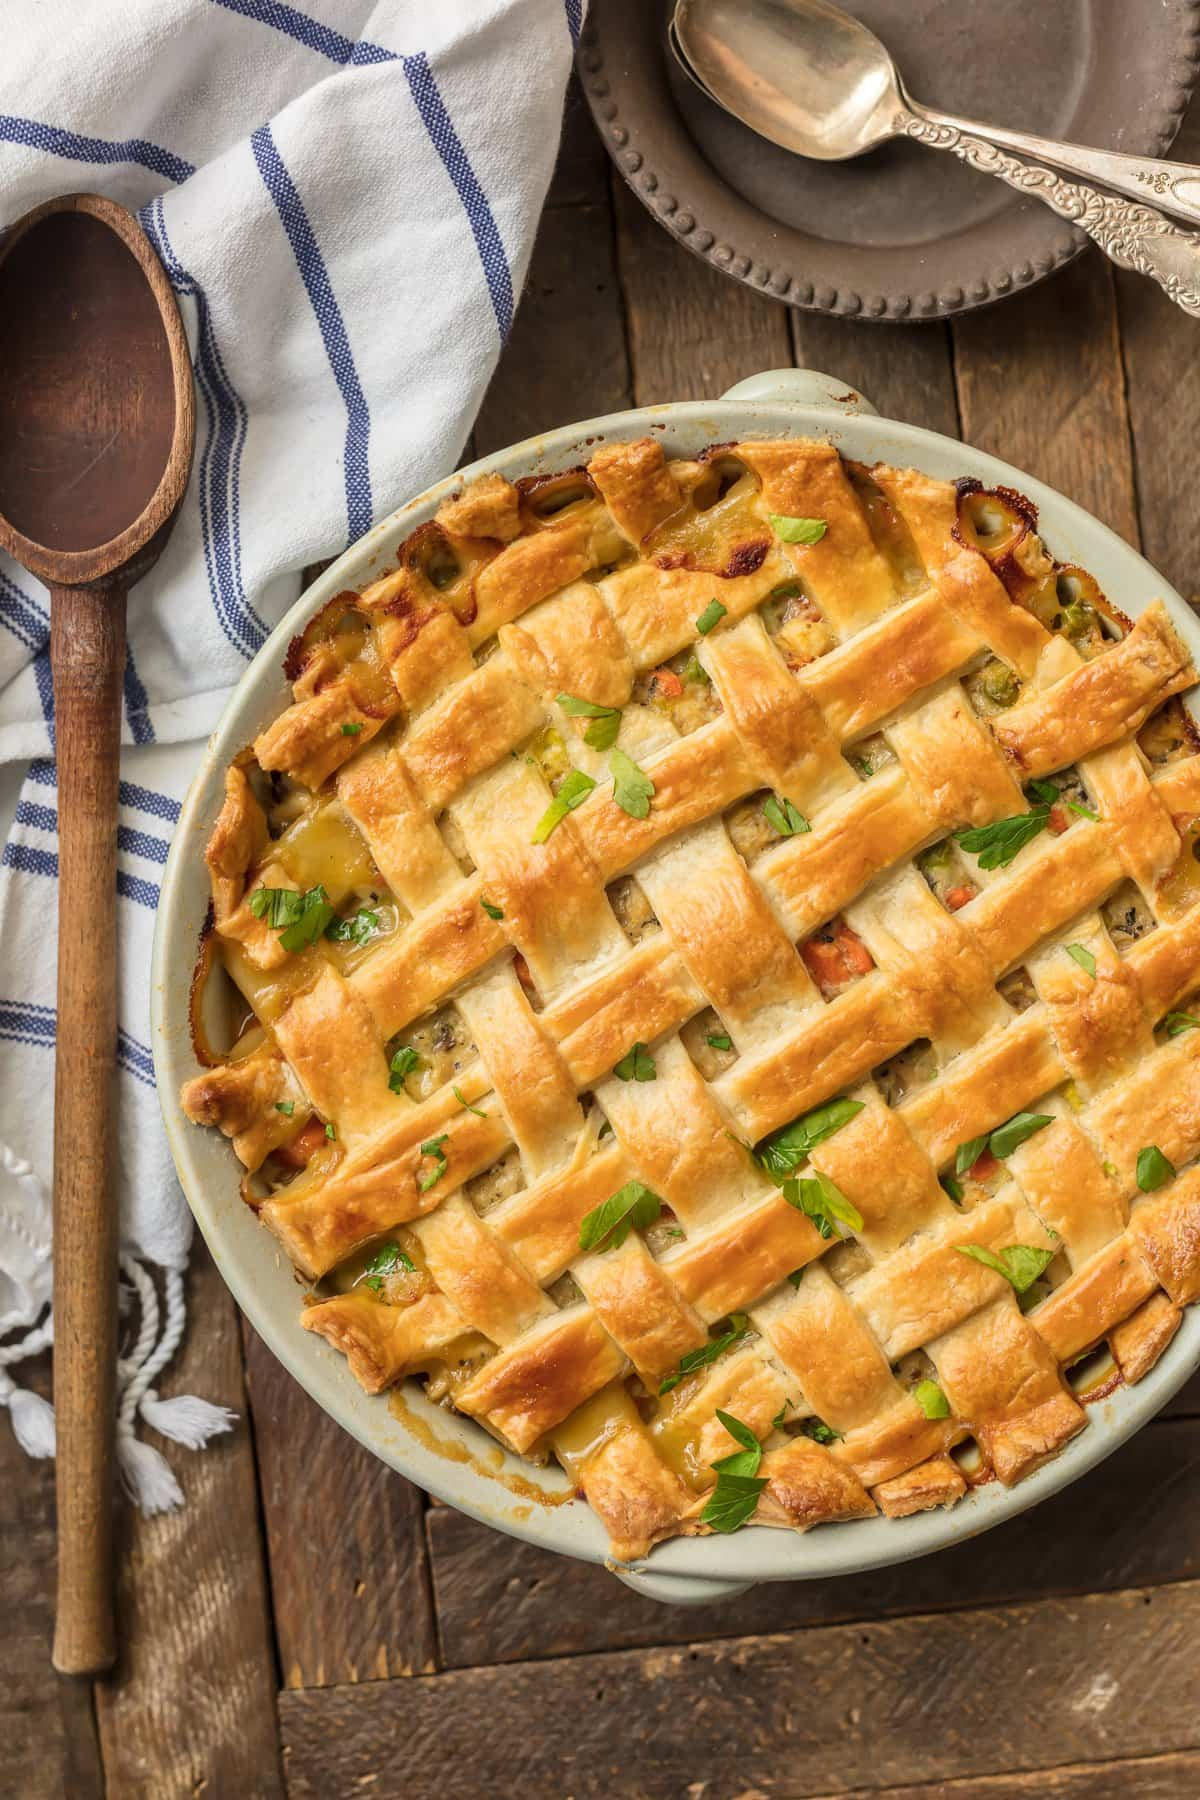 Chicken Pot Pie Casserole is such an easy way to make Chicken Pot Pie. This crazy good Recipe for Chicken Pot Pie is the ultimate easy comfort food! This AMAZING Chicken Pot Pie Recipe is loaded with carrots, peas, chicken, and topped with flakey pie crust. OBSESSED is an understatement!